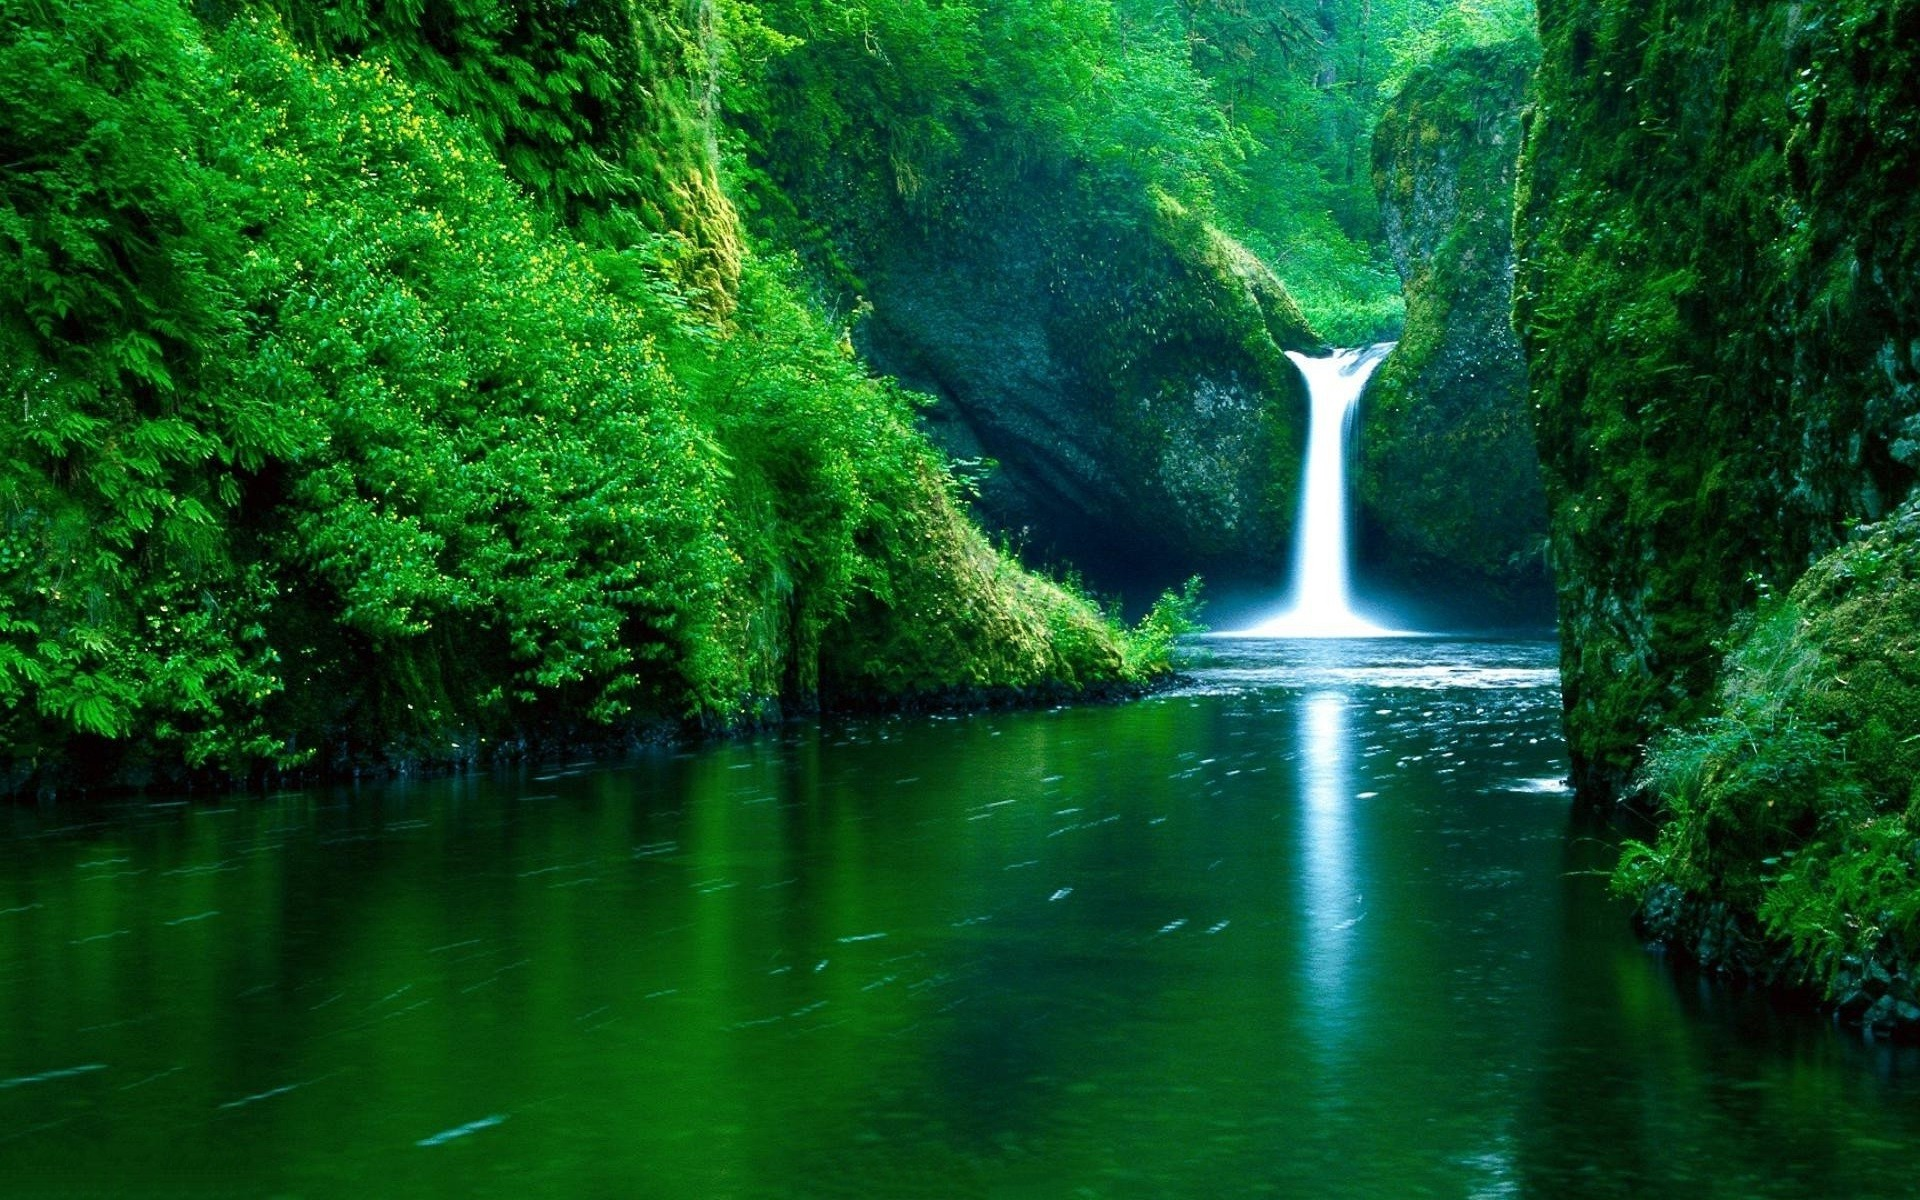 Hd Wallpapers For Pc Nature